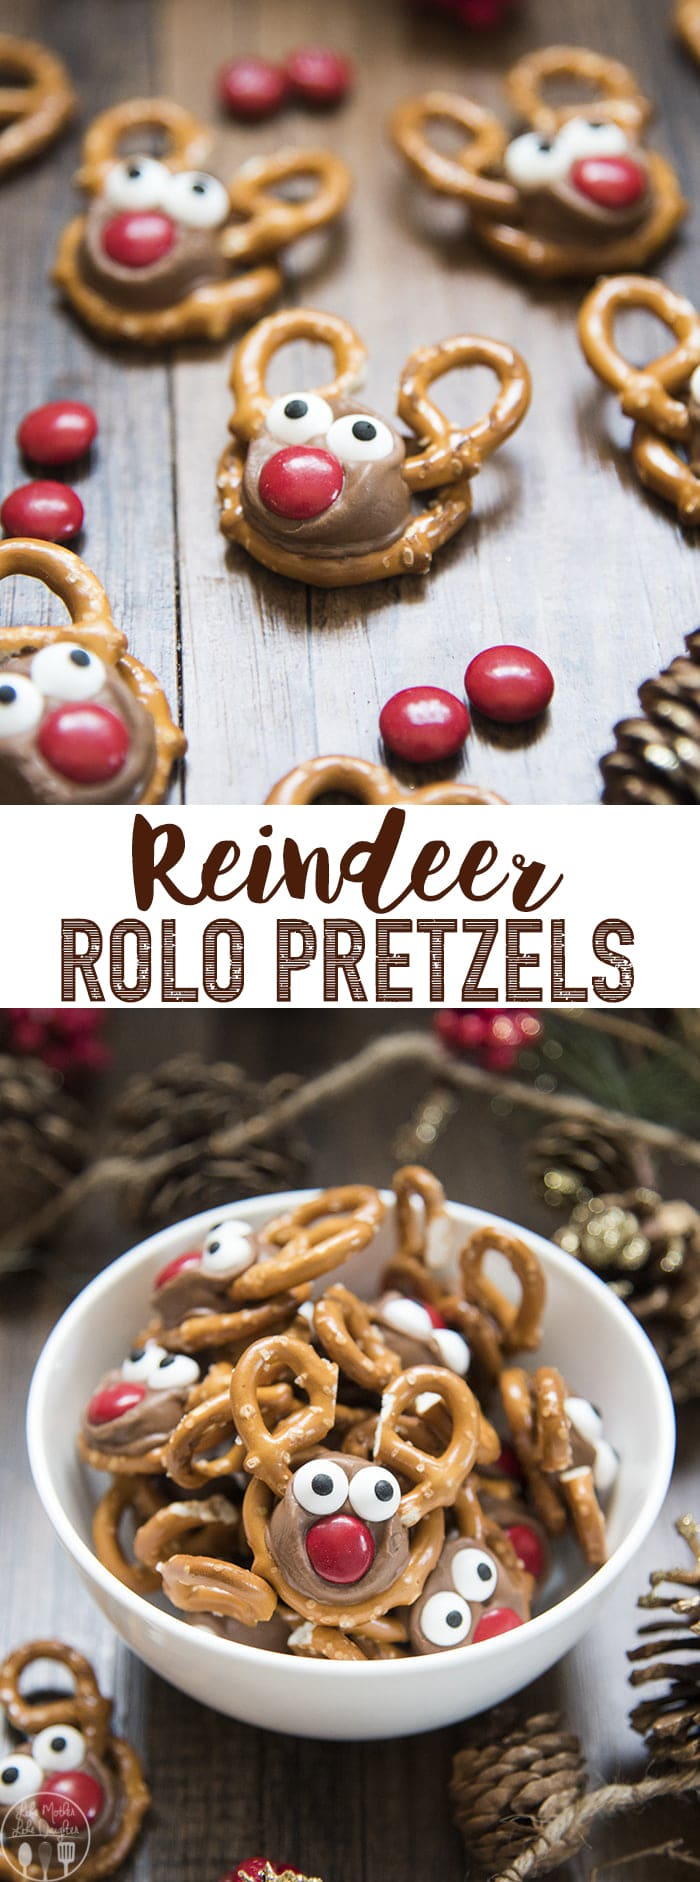 Rolo Pretzel Reindeer are not only a delicious sweet and salty treat, but they are adorable, and fun, and perfect for the Christmas season!